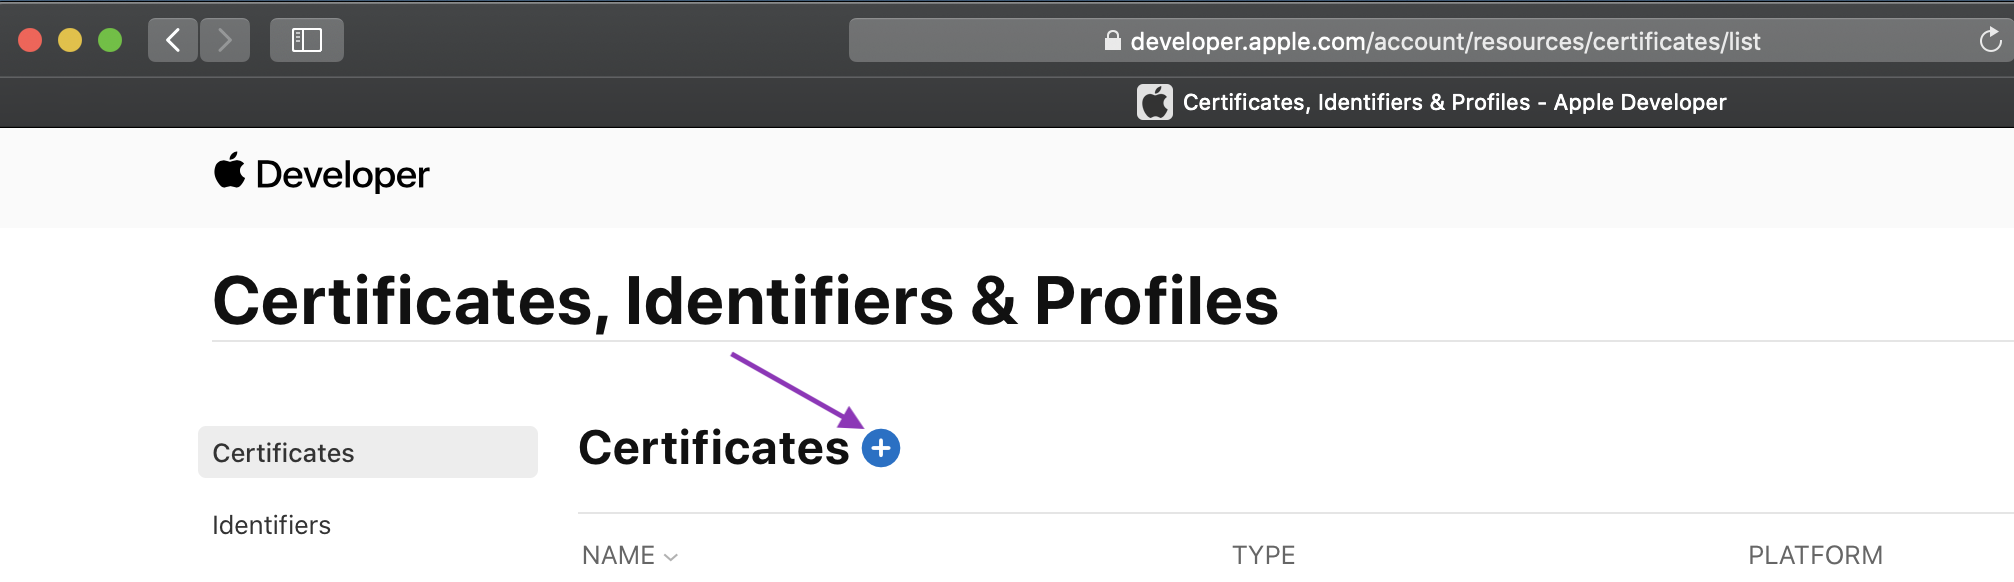 Add certificate button